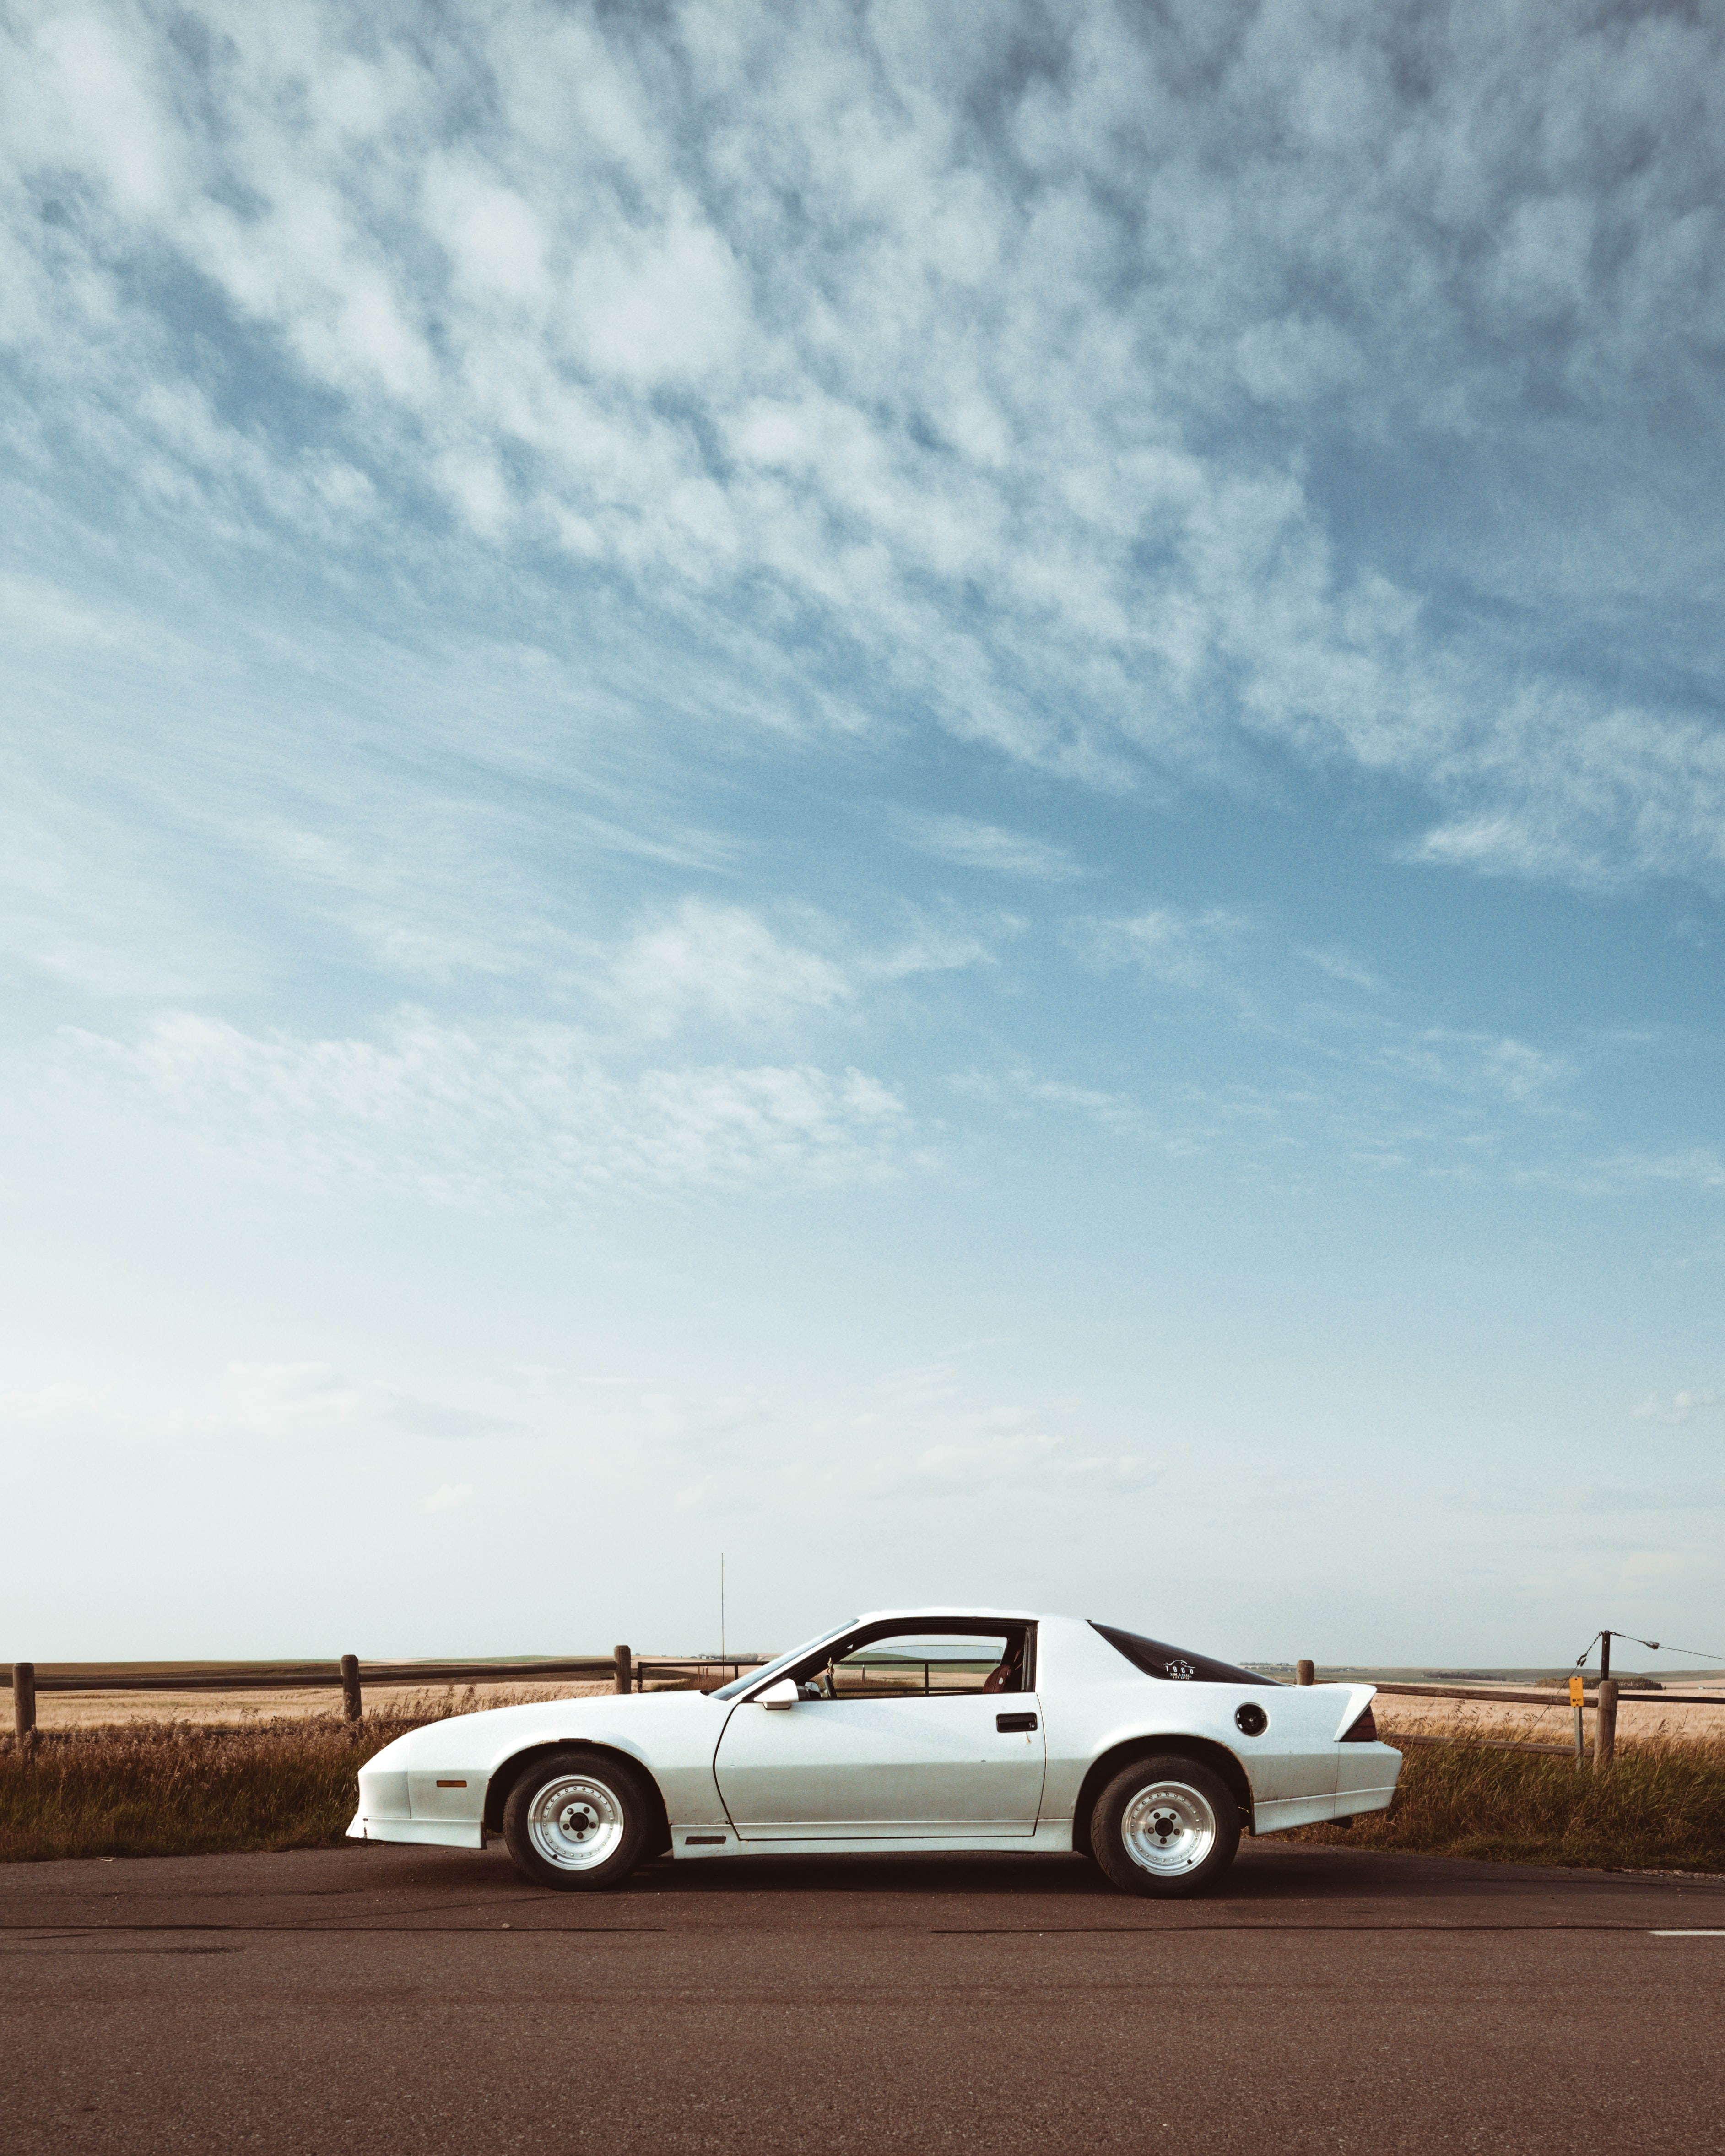 Old Cars Pictures Download Free Images On Unsplash